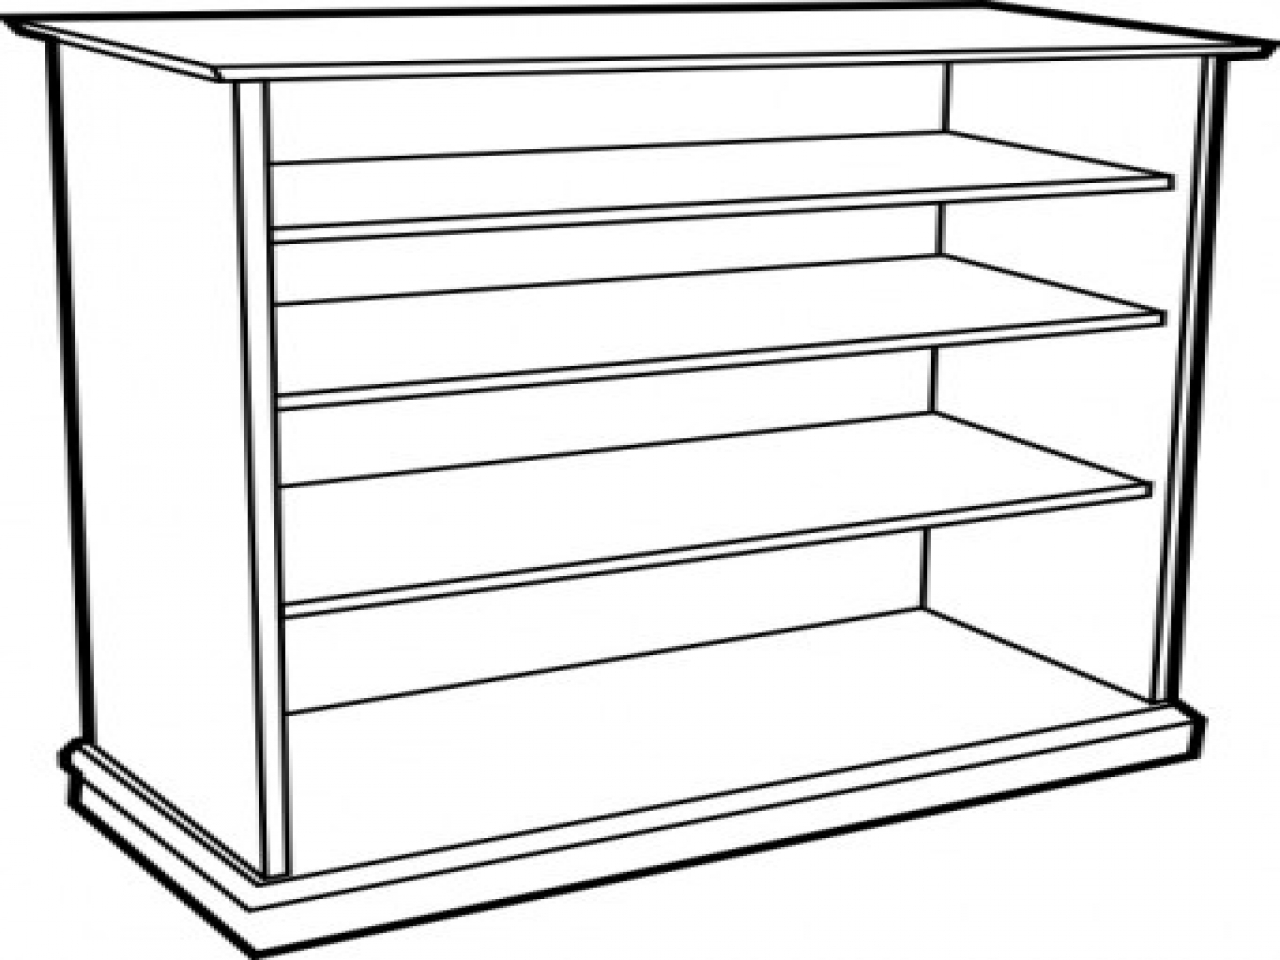 Shelf clipart black and white.